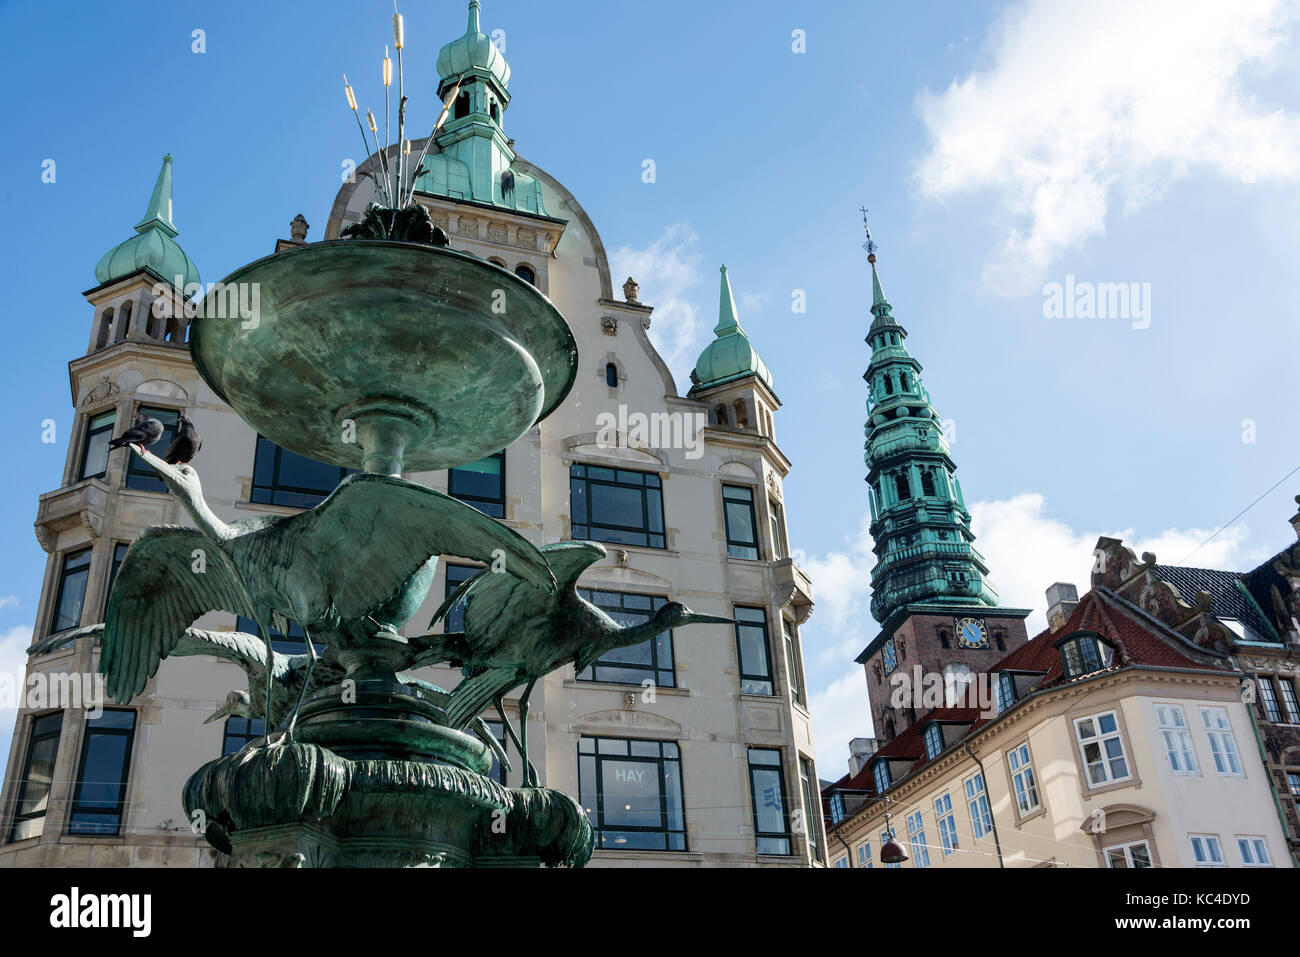 The stork sculpture on the Stork Spring Water Fountain (Storkespringvandets) signifies an annual tradition for newly - Stock Image